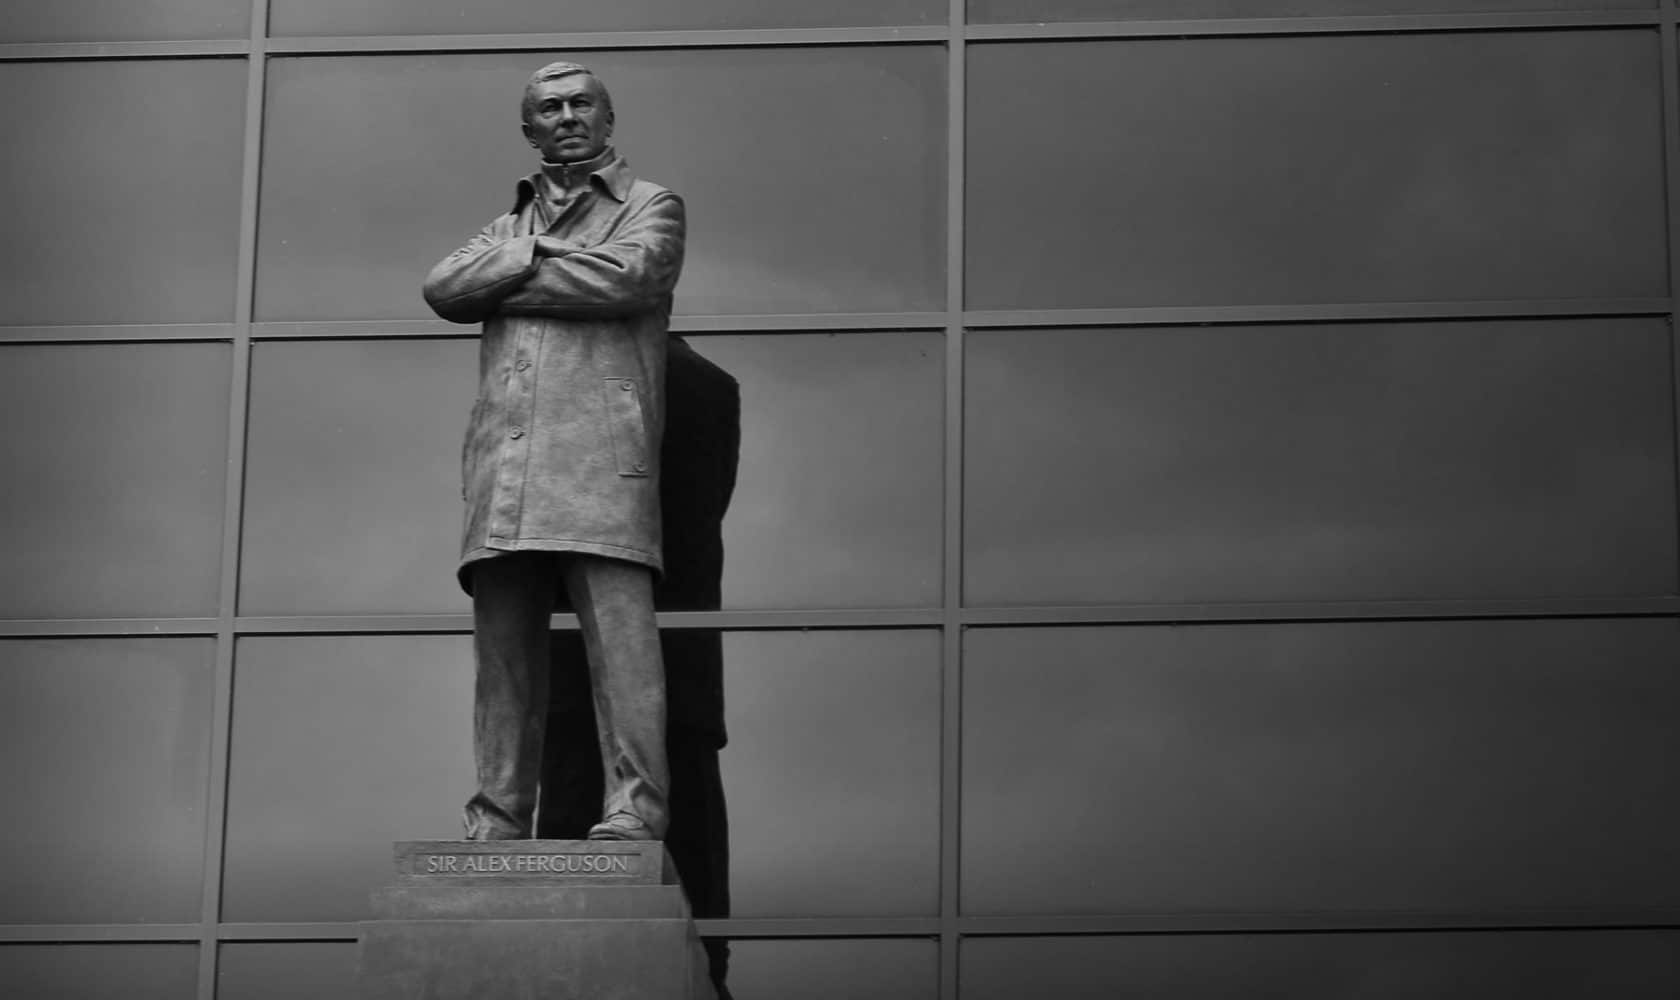 Sir Alex Ferguson statue outside Old Trafford.